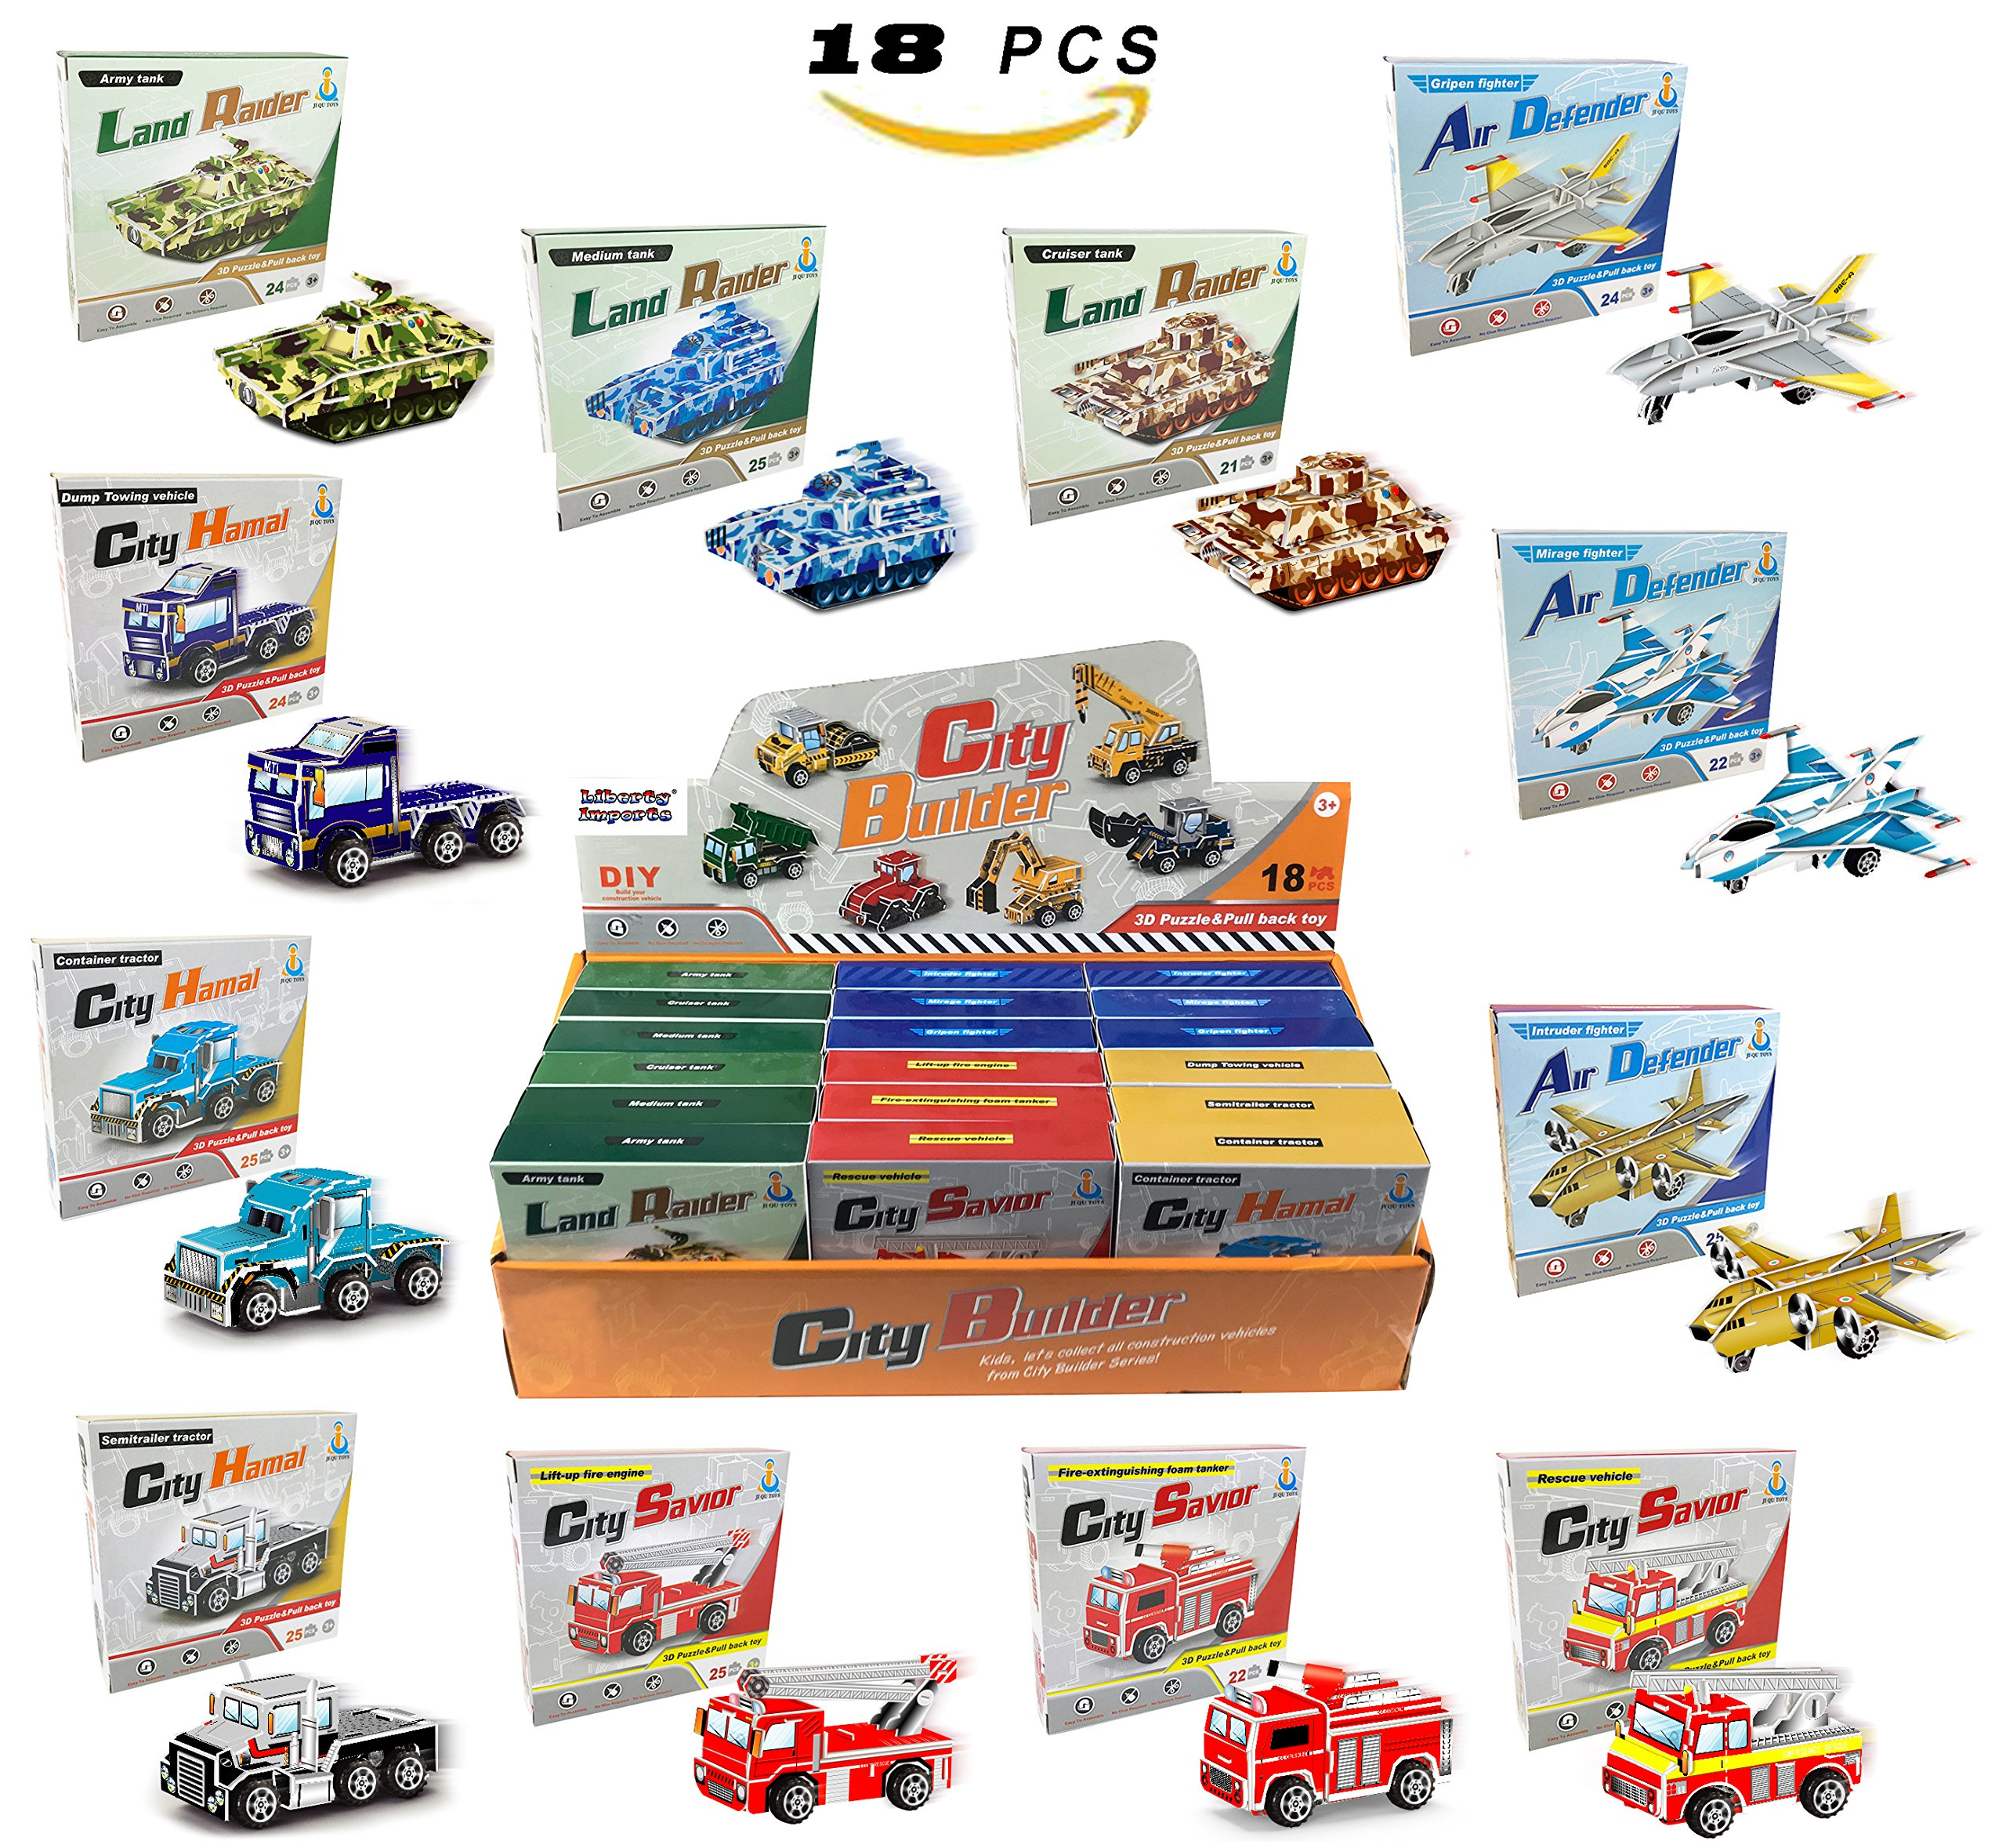 Liberty Imports Set of 18 Pullback Vehicles | STEM Building 3D Puzzle Car Model Kits Assortment | Educational DIY Party Favors for Kids (Tanks, Planes, Fire Trucks, Transporters)